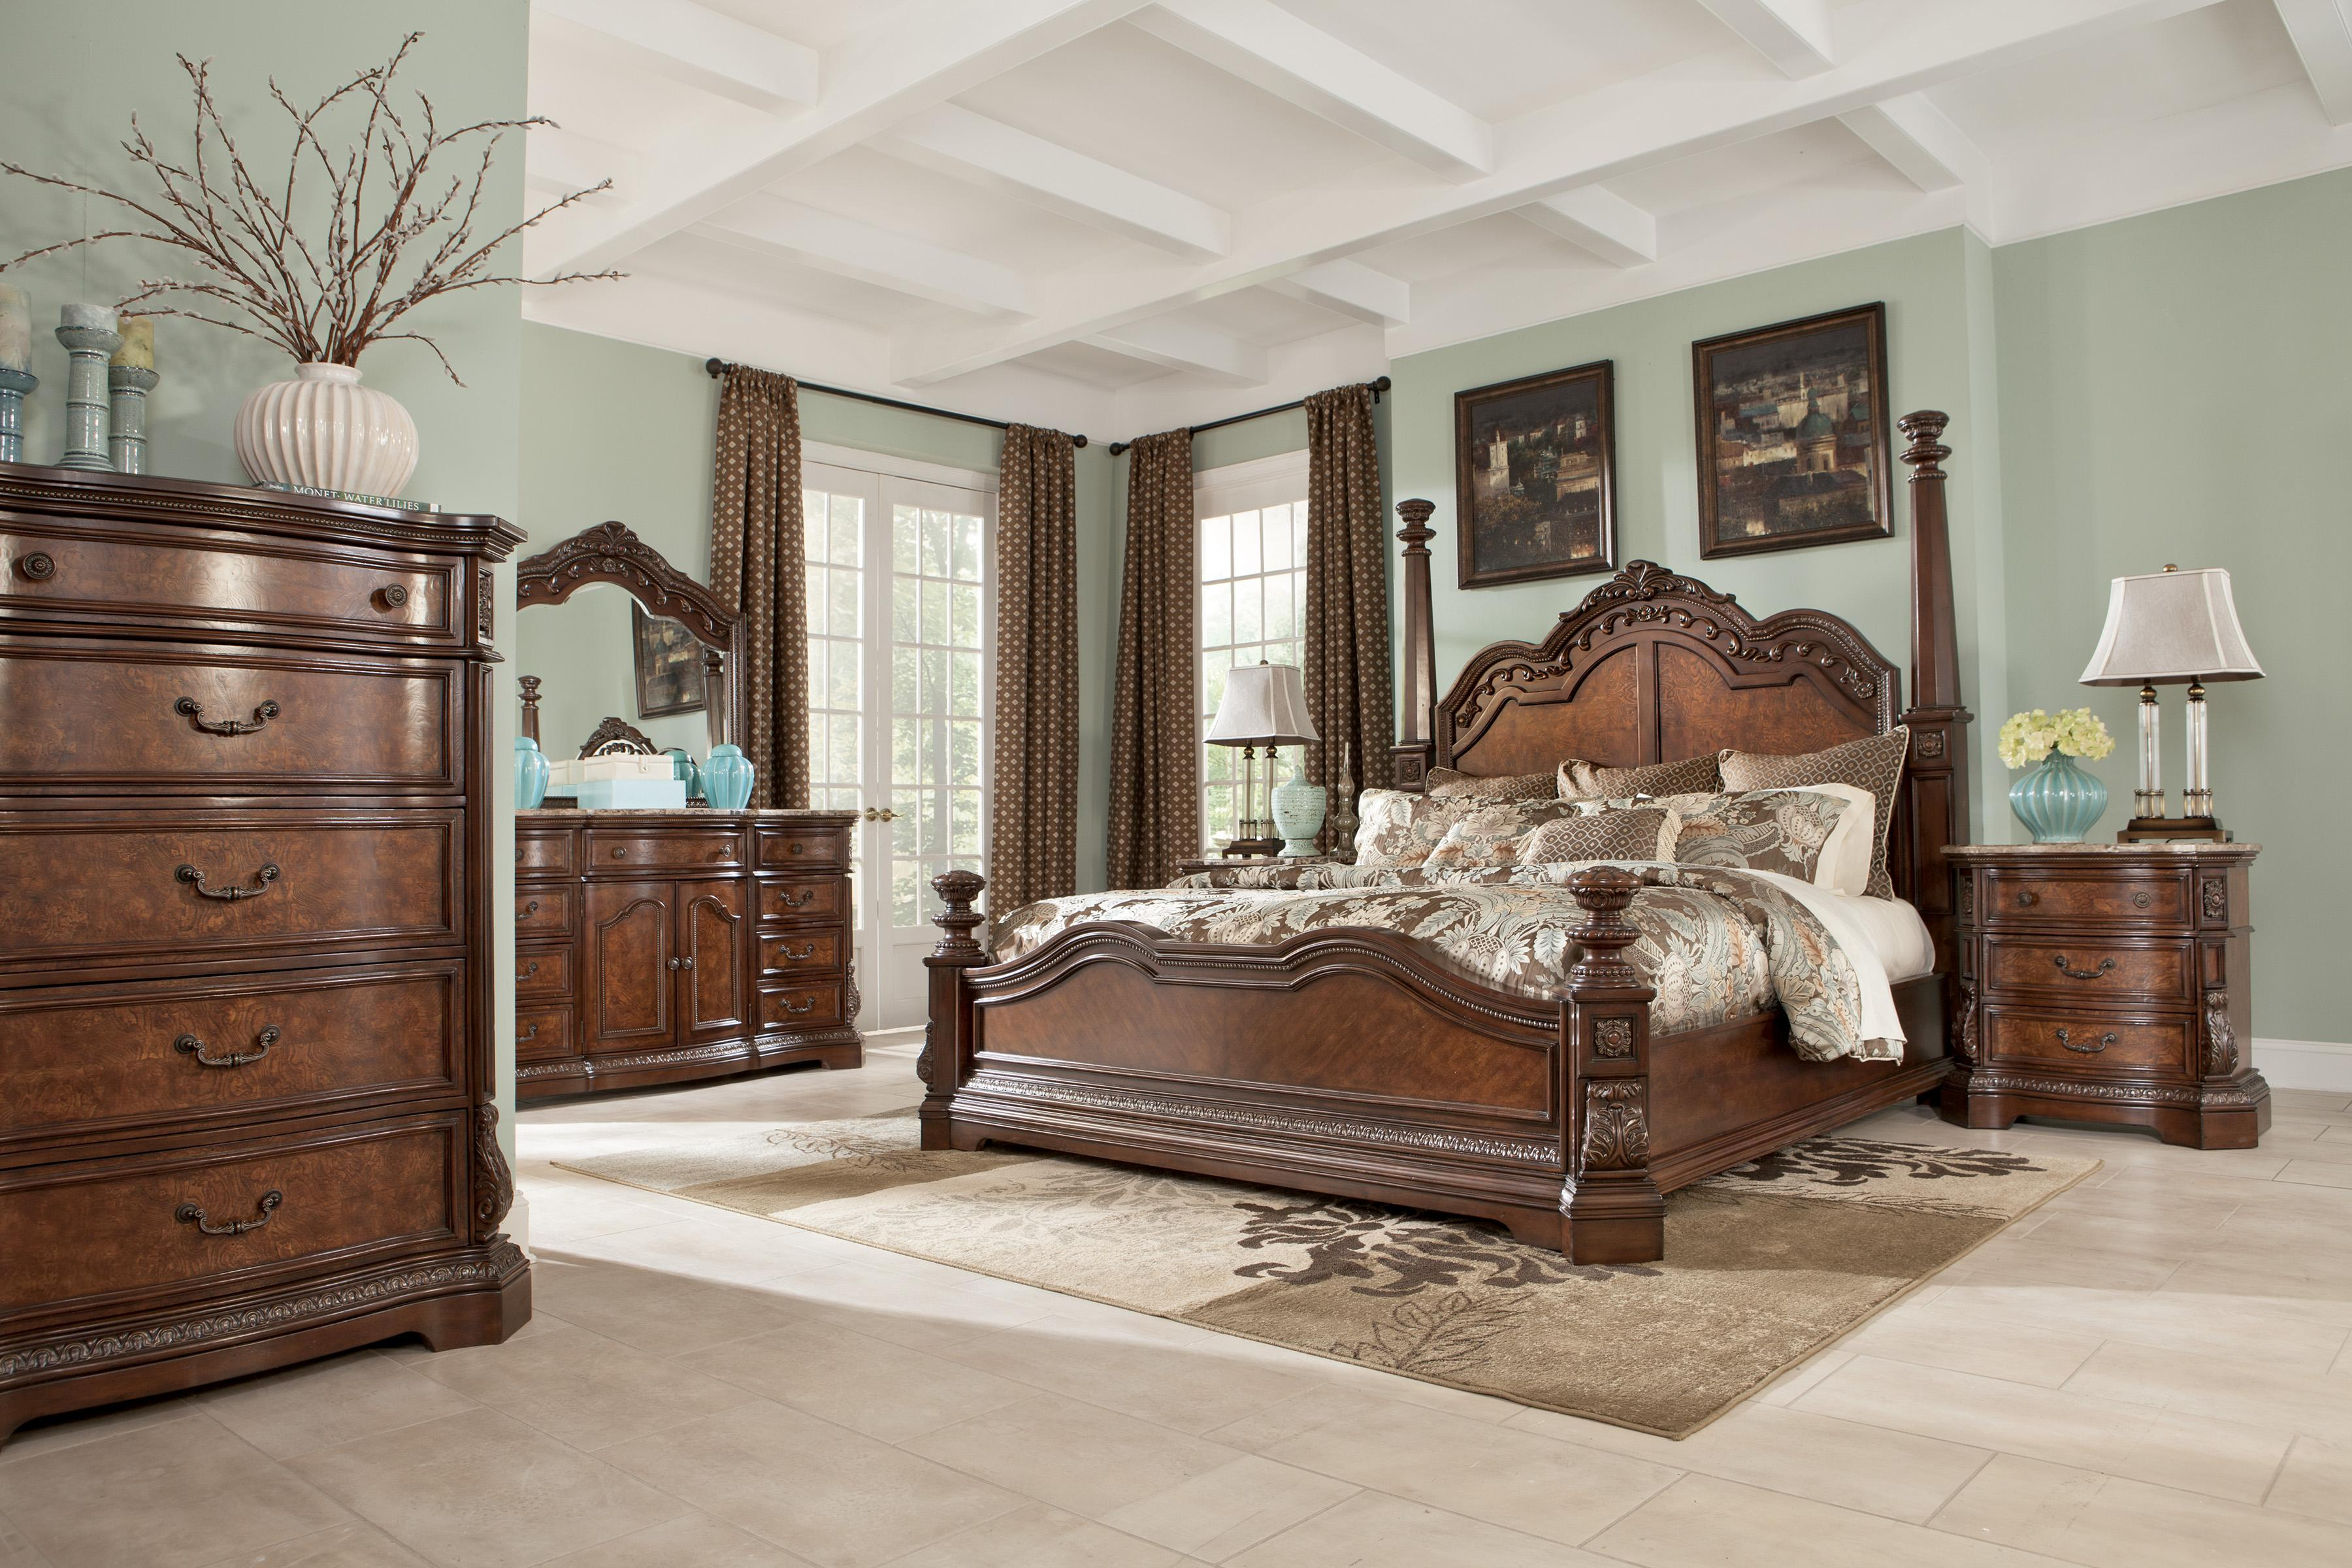 Traditional California King Poster Bed With Tall Headboard Posts